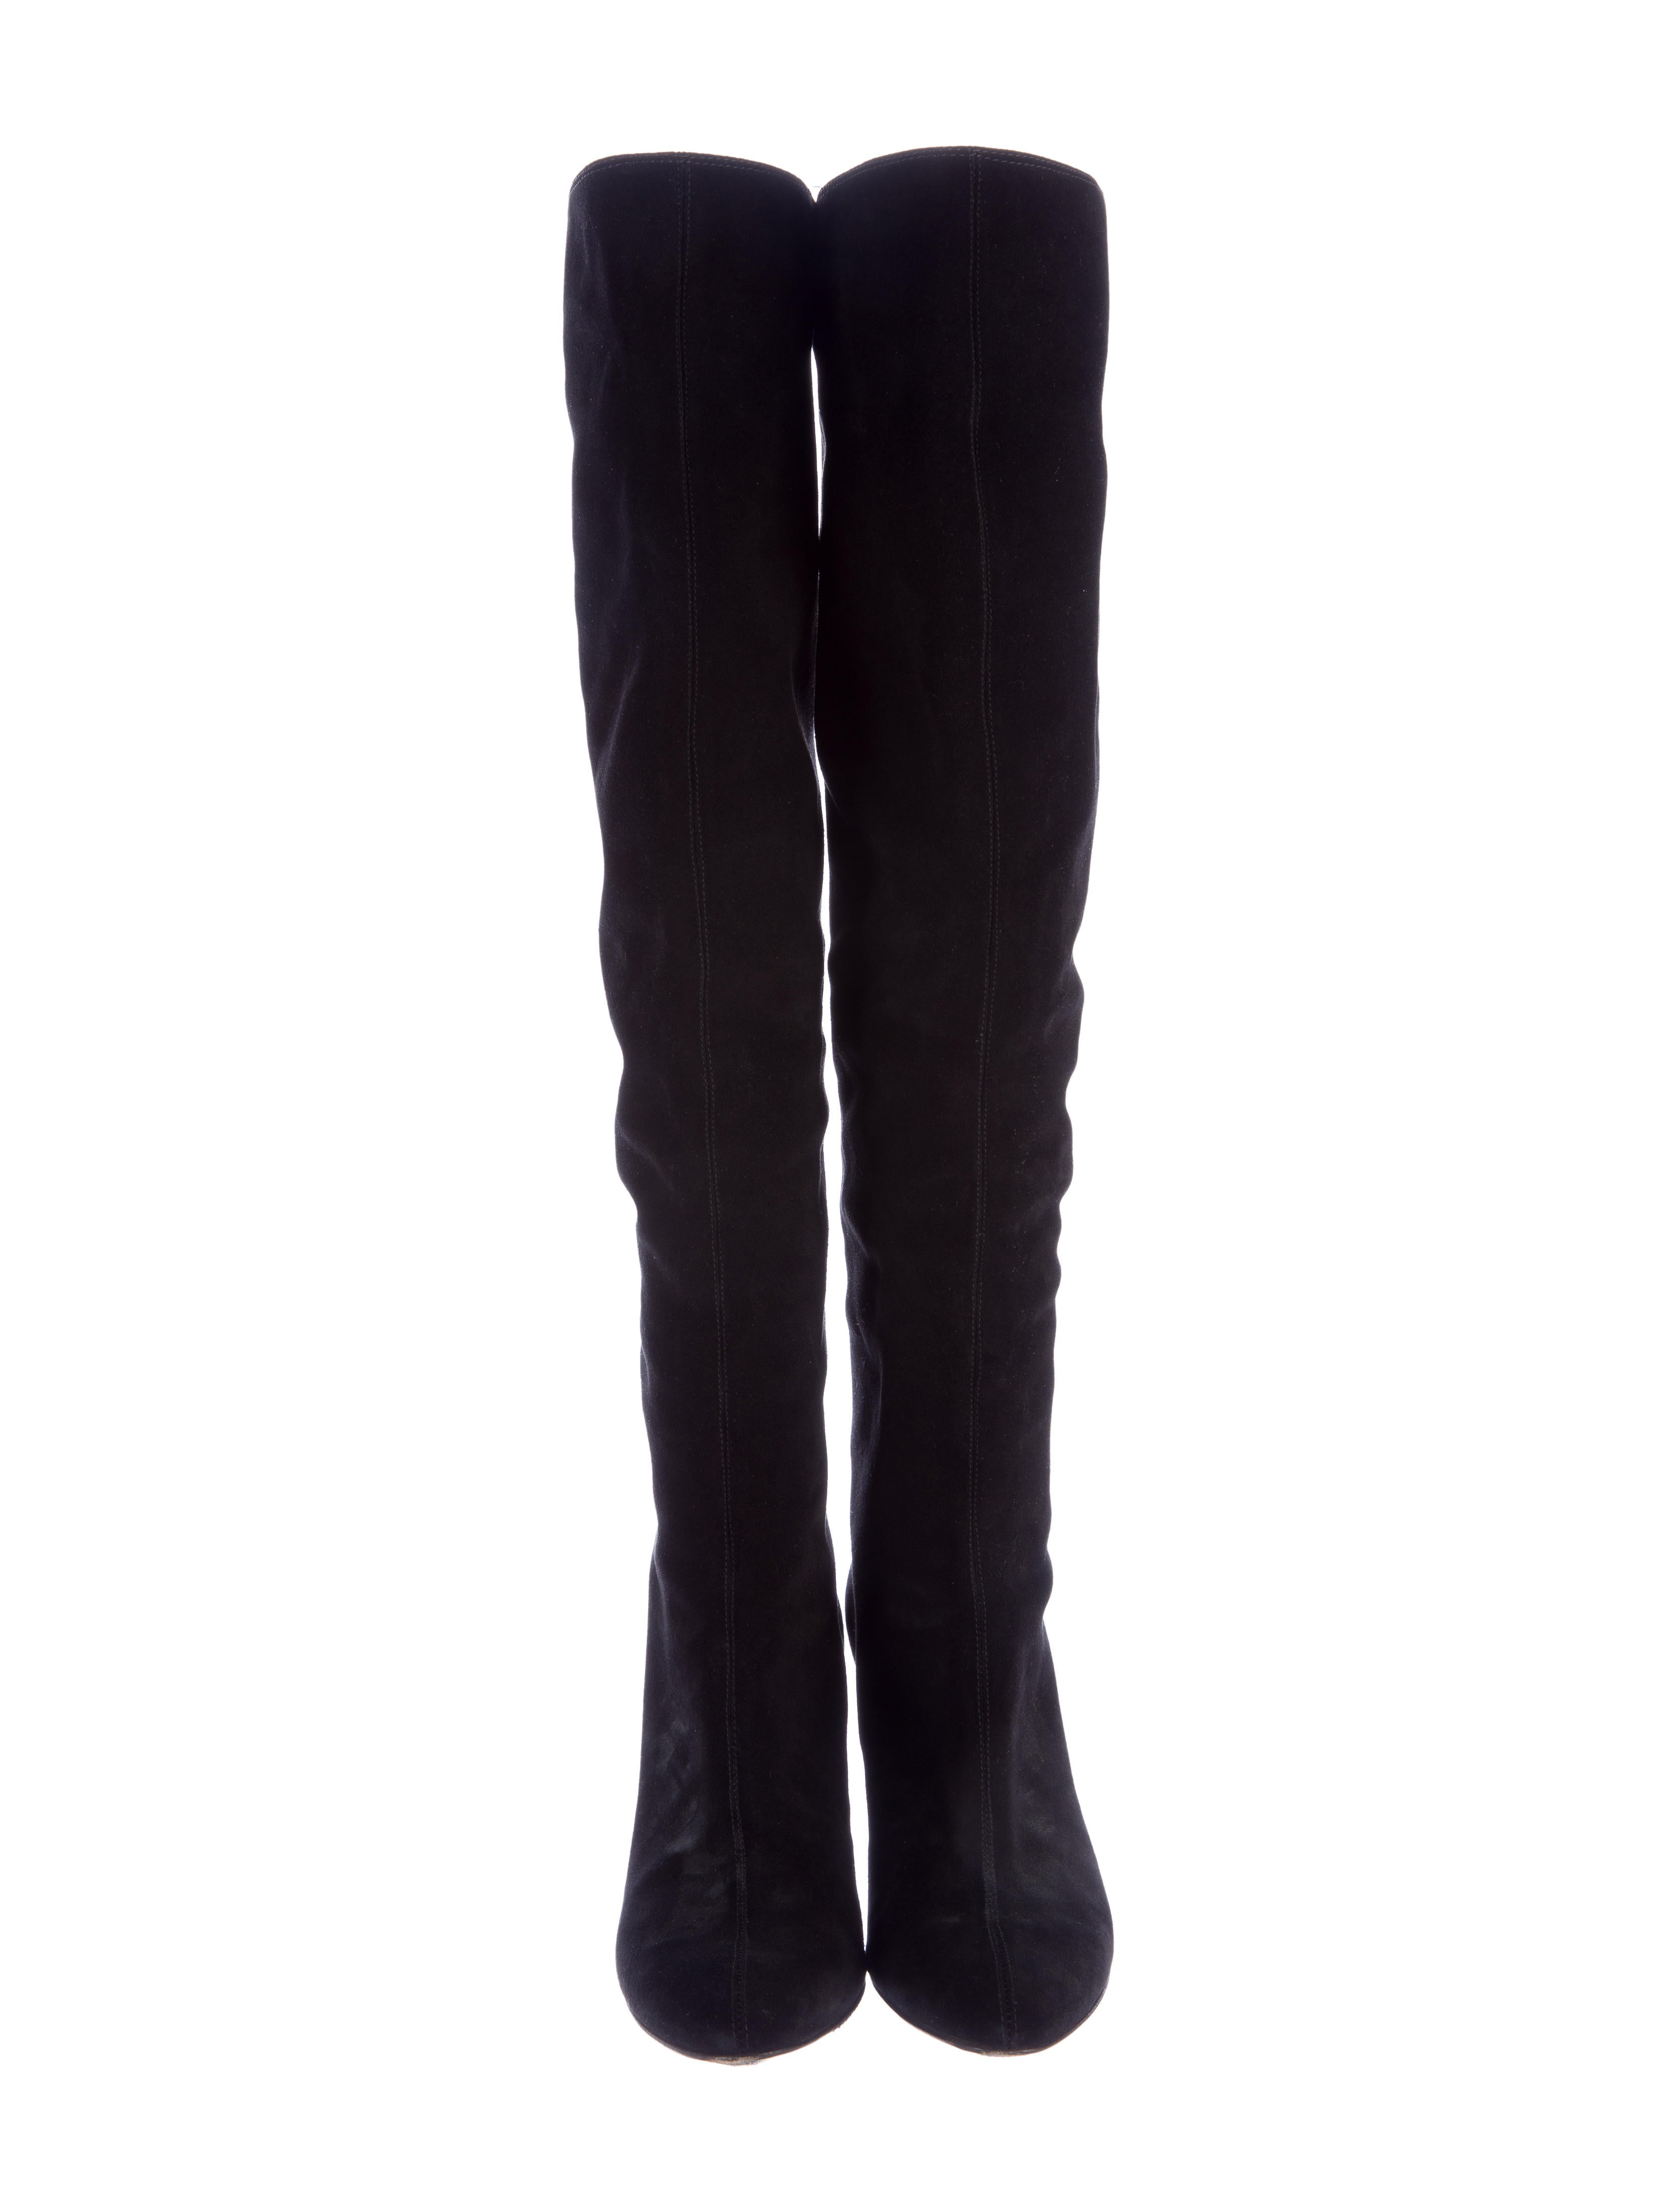 giuseppe zanotti suede wedge the knee boots shoes